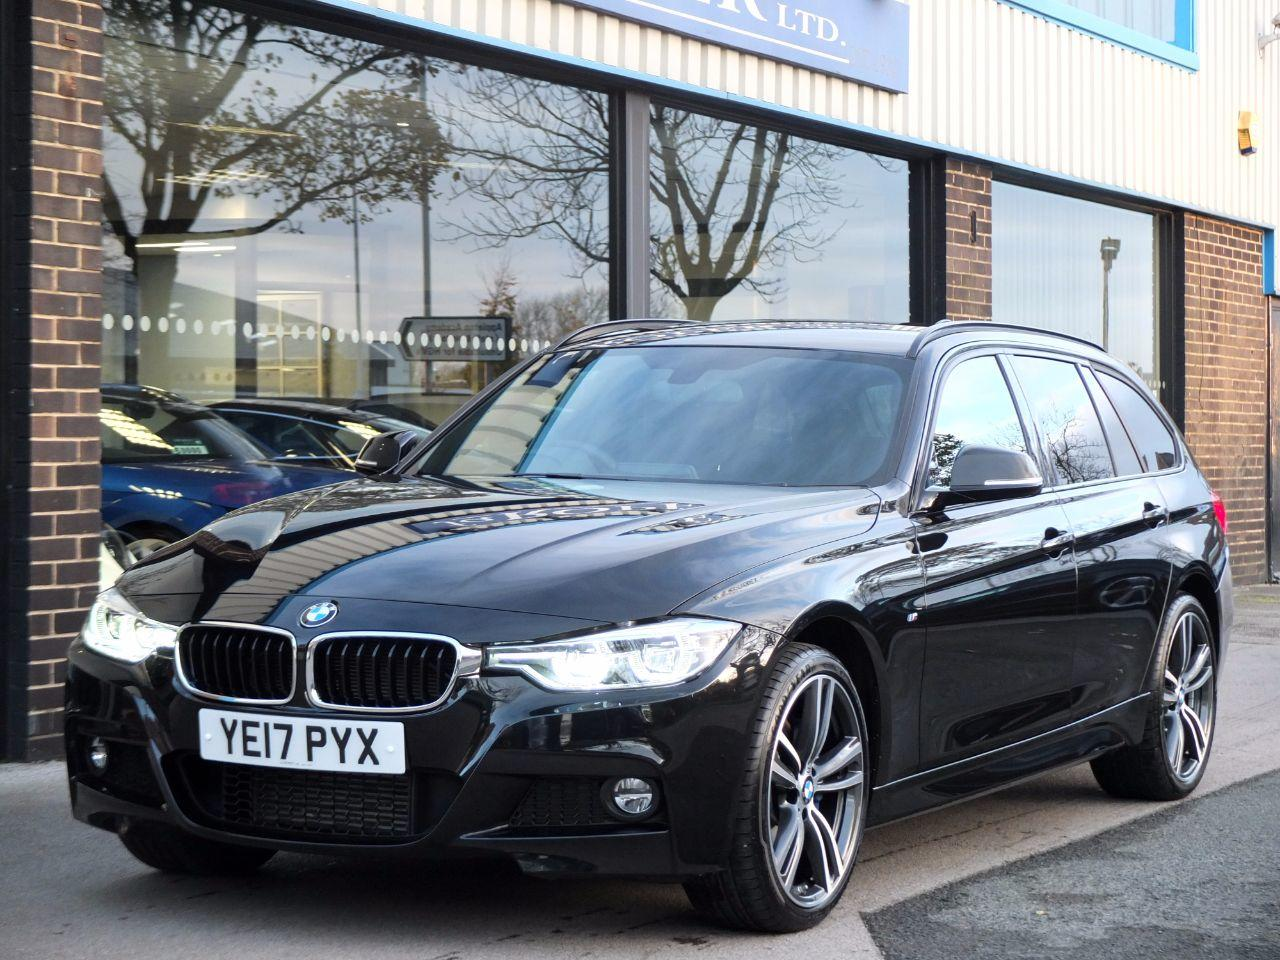 BMW 3 Series 2.0 320d xDrive M Sport Plus Pack Touring Auto Estate Diesel Black Sapphire MetallicBMW 3 Series 2.0 320d xDrive M Sport Plus Pack Touring Auto Estate Diesel Black Sapphire Metallic at fa Roper Ltd Bradford